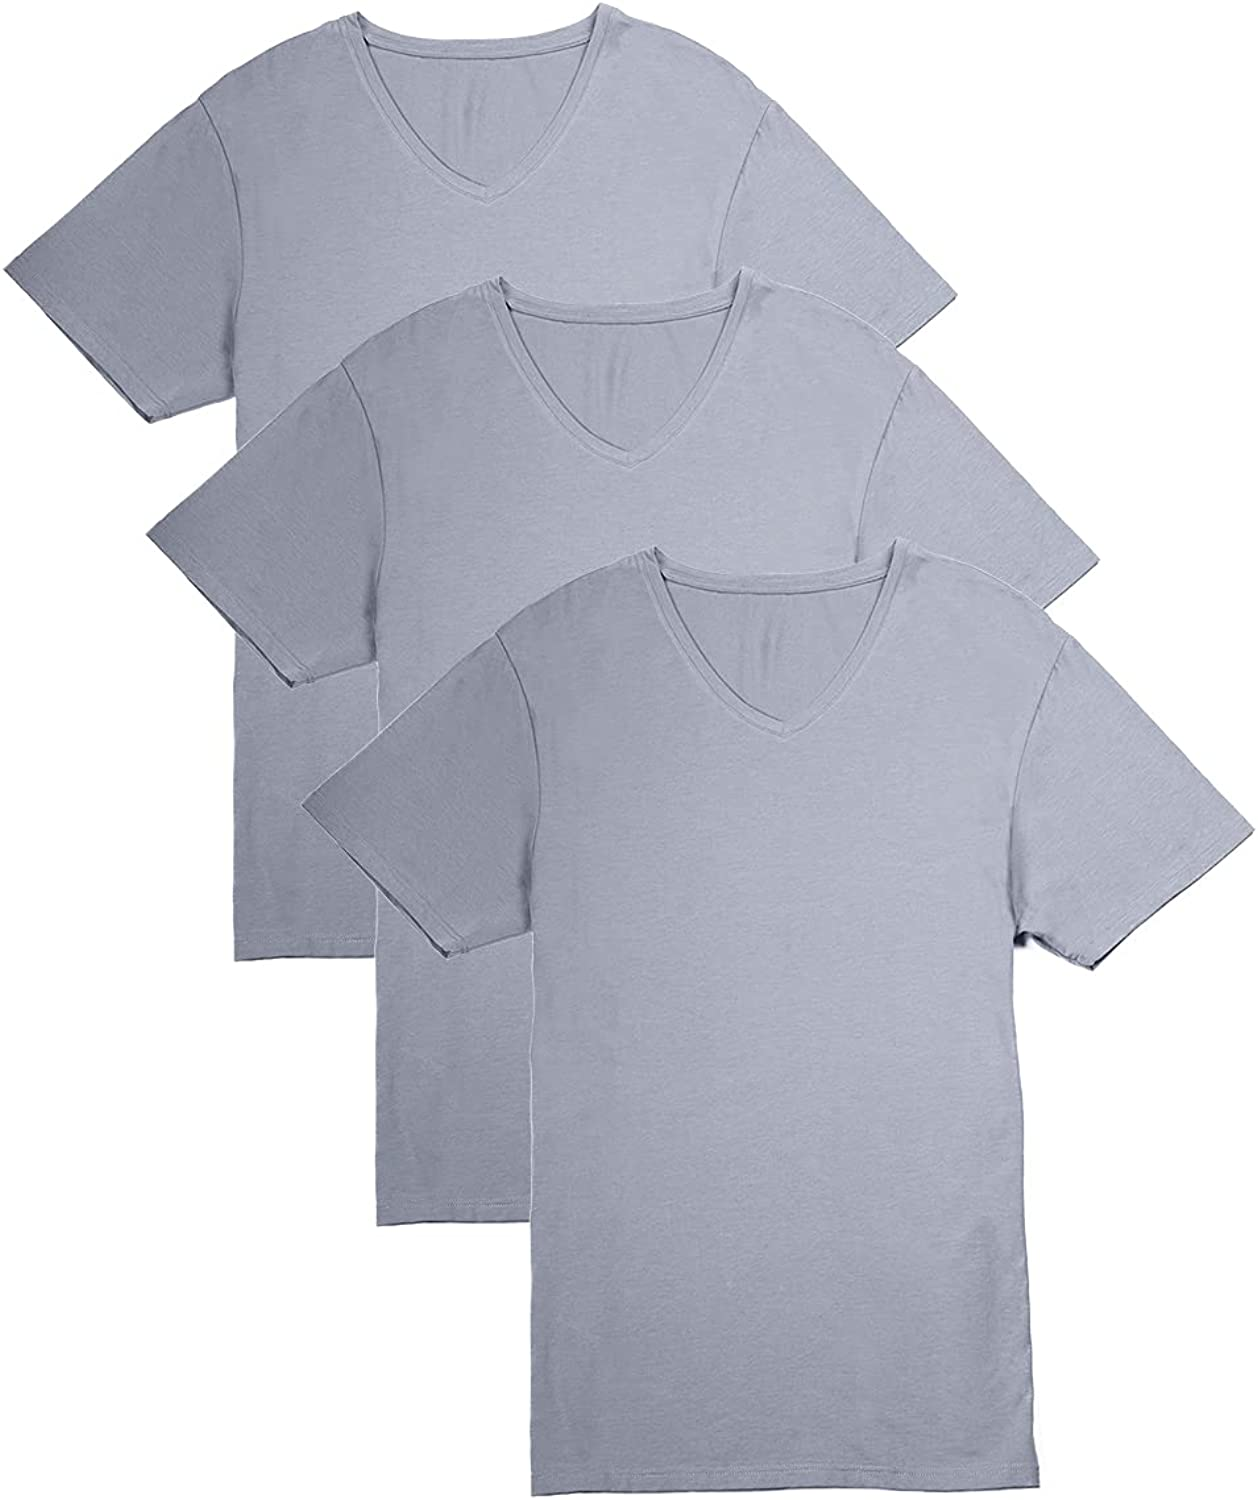 Fishers Popularity Finery Men's Classic V-Neck Tucked OFFicial mail order Soft Keep Comfort Und